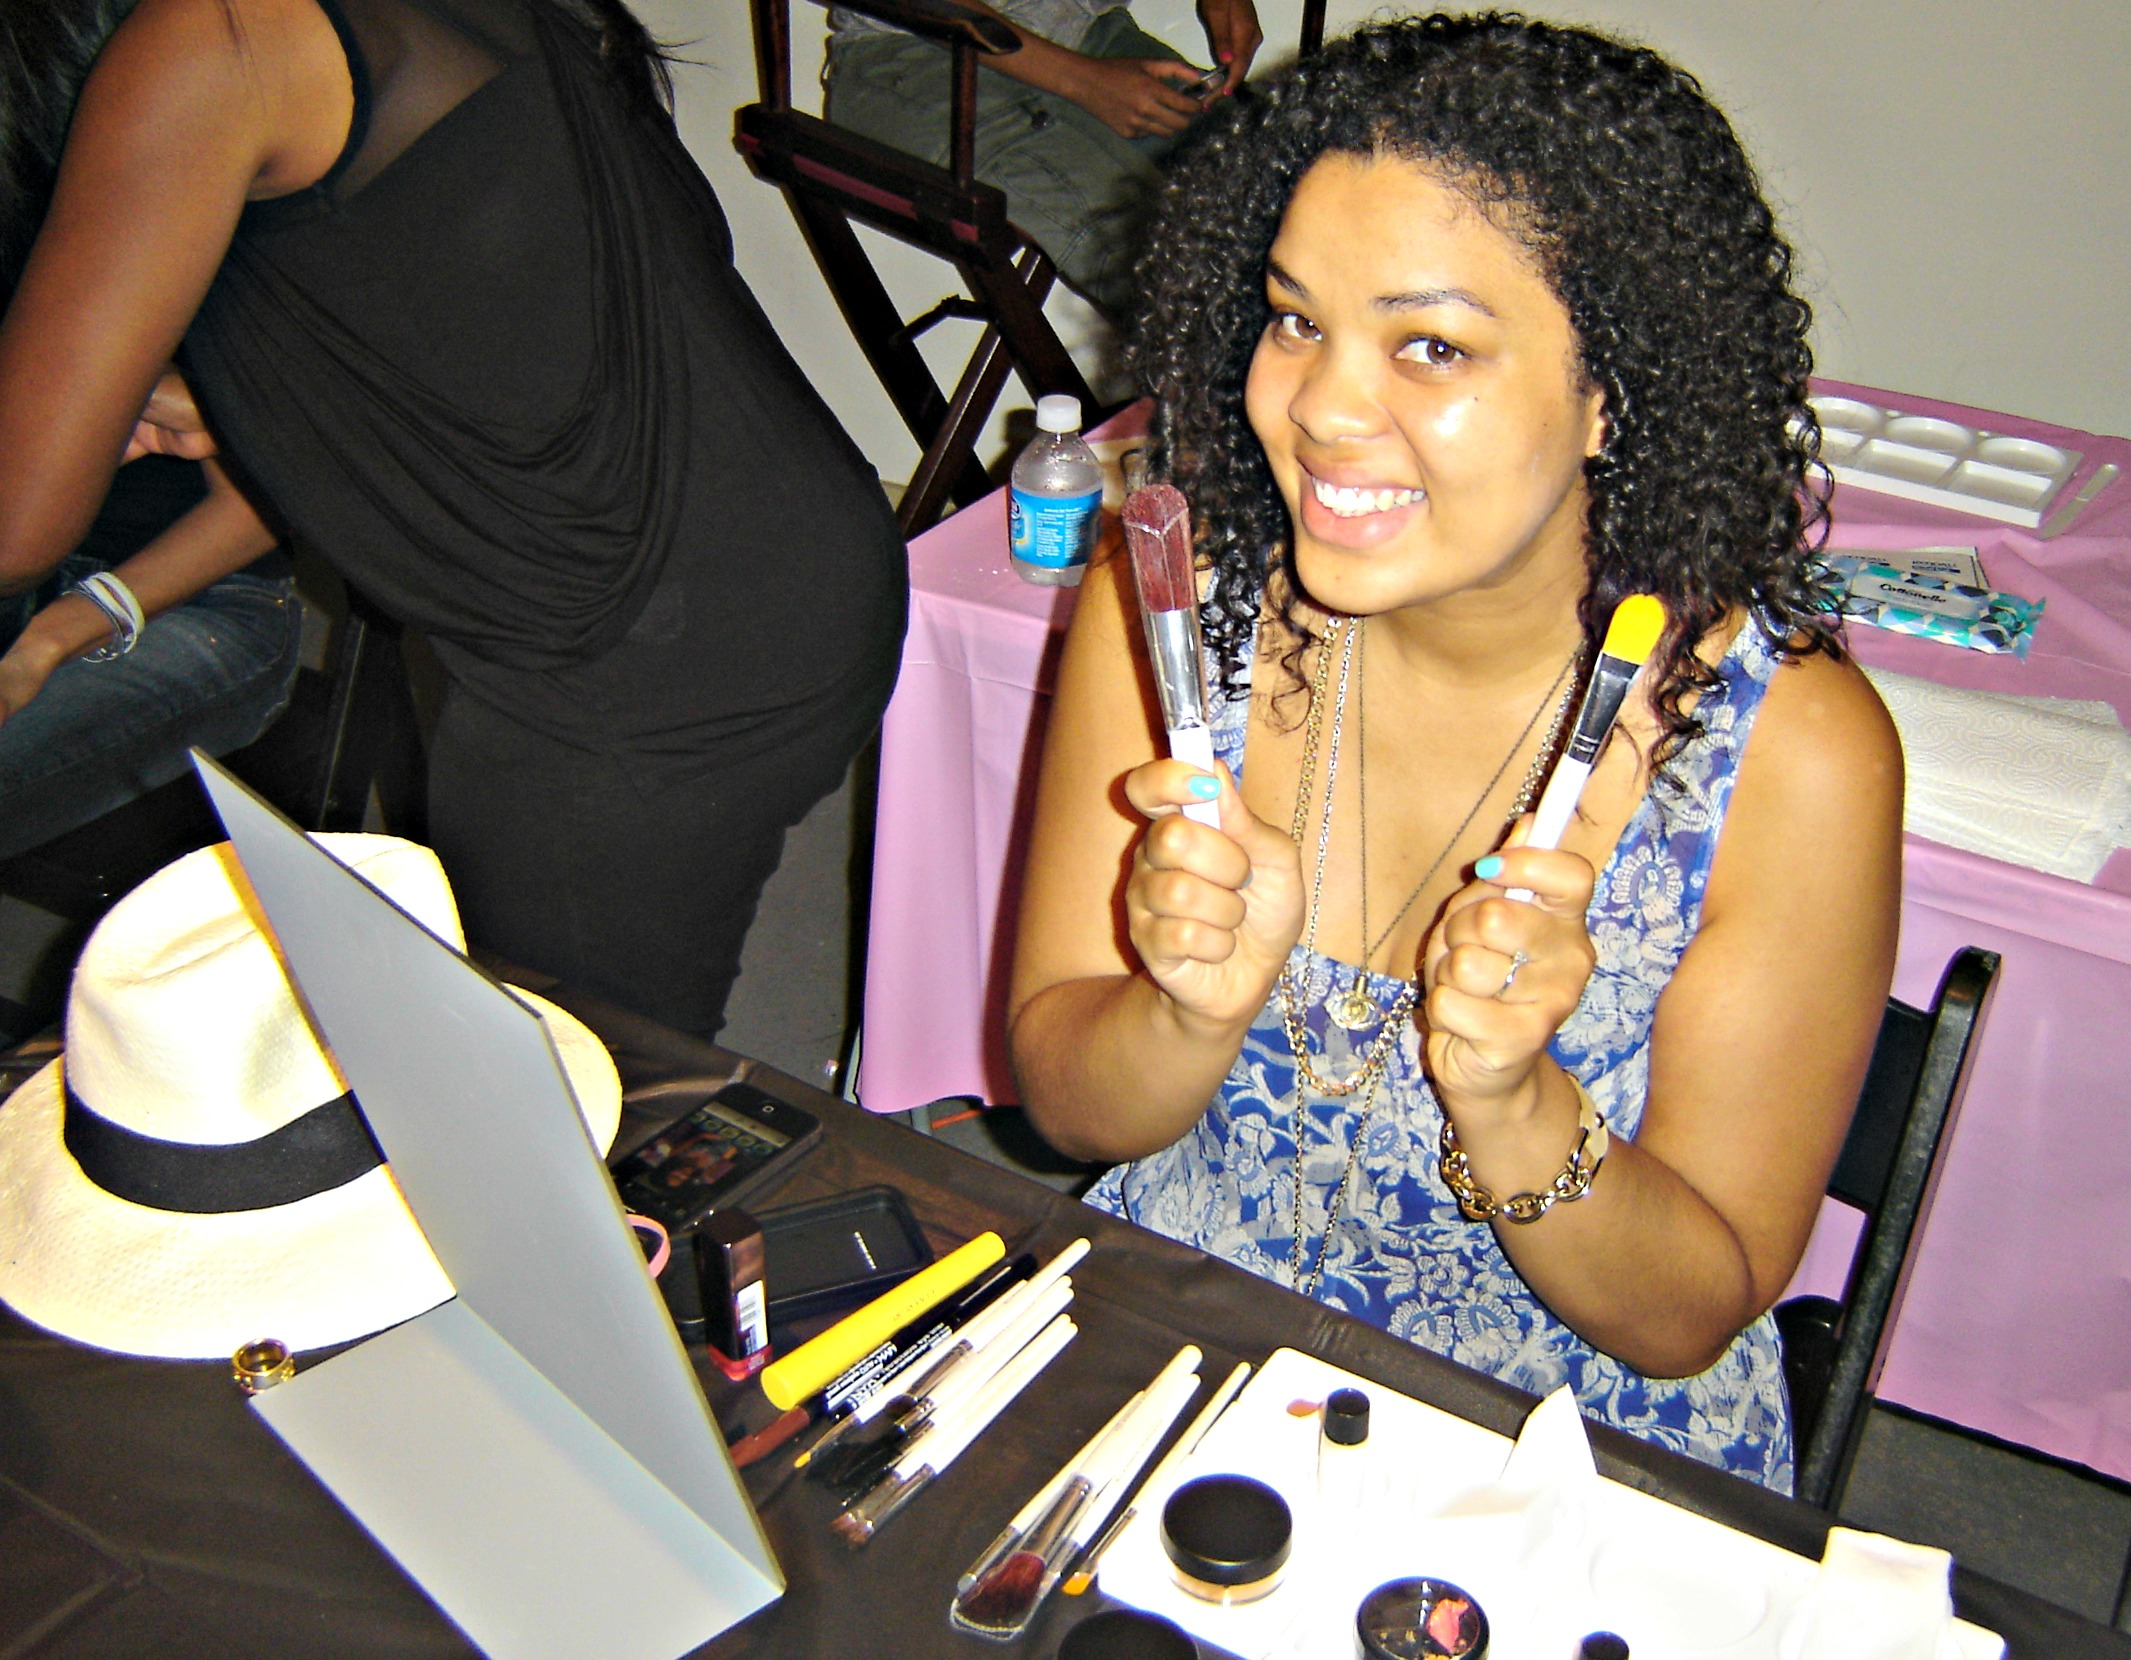 Saisha Beecham, Makeup Workshop, Makeup, The Fashionista Next Door